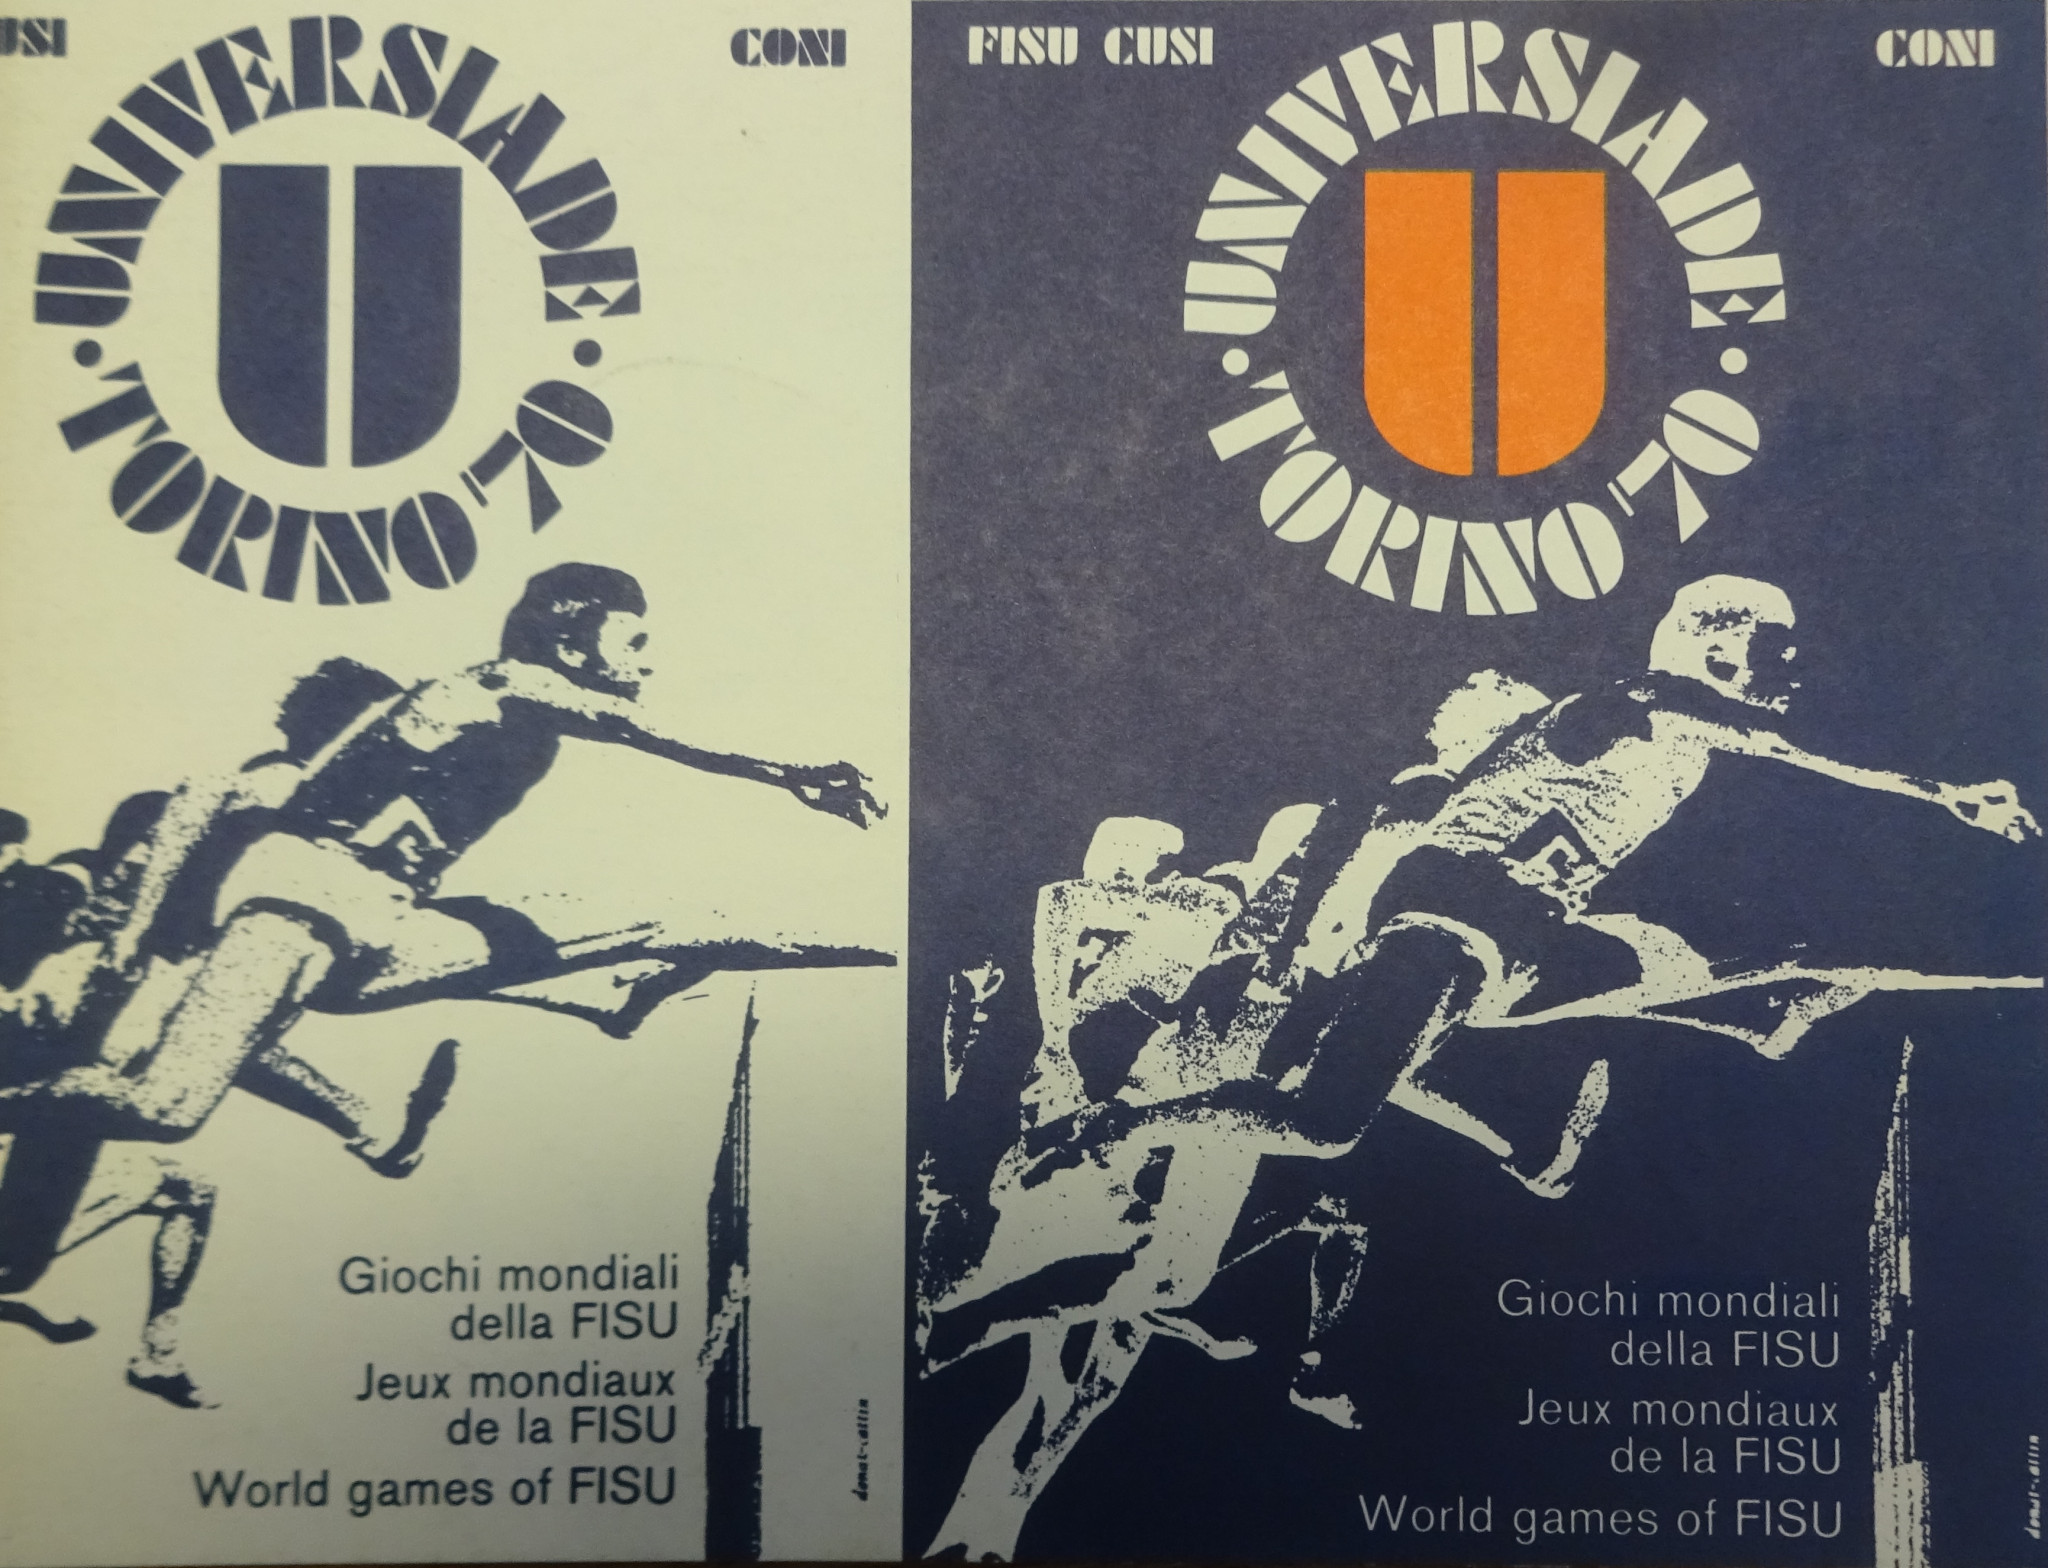 The poster designed for 1970 ©FISU/CUSI/CONI